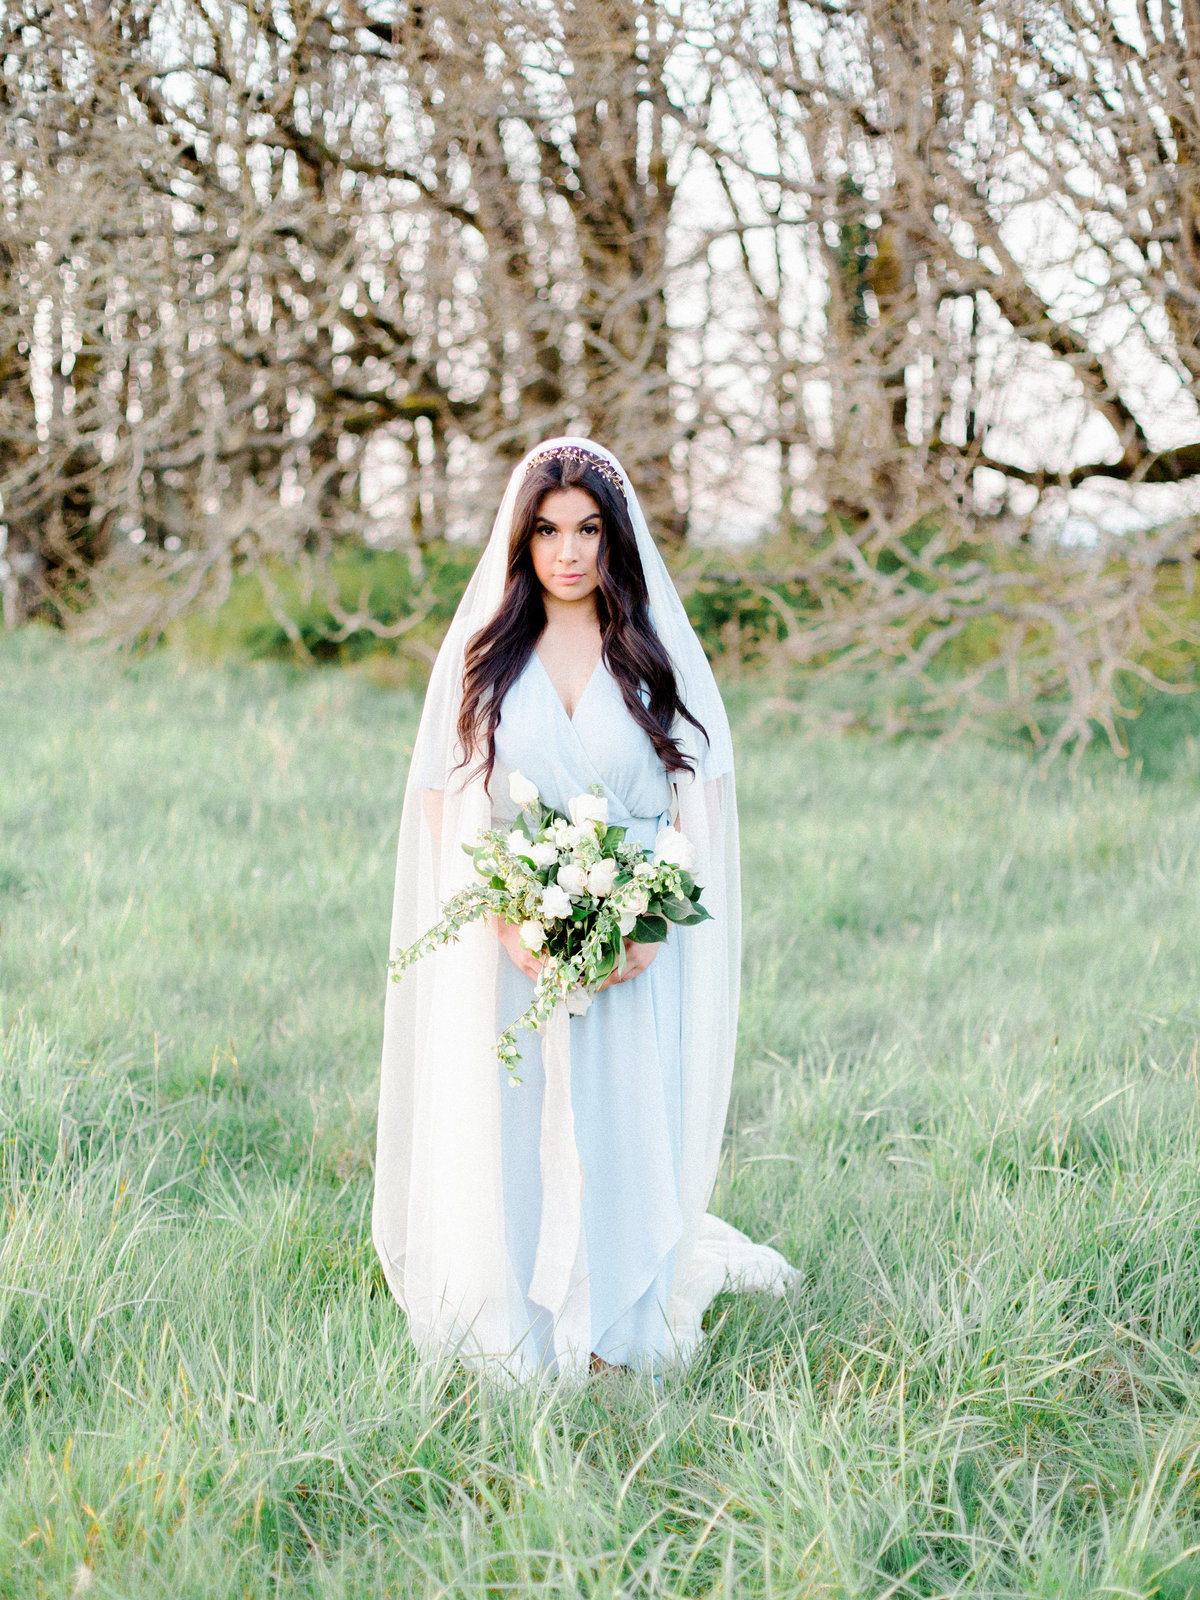 WHEN-SHE-KNEW-PHOTOGRAPHY-ADORN-MAGAZINE-ETHEREAL-BRIDAL-WEDDING-EDITORIAL-OREGON-13